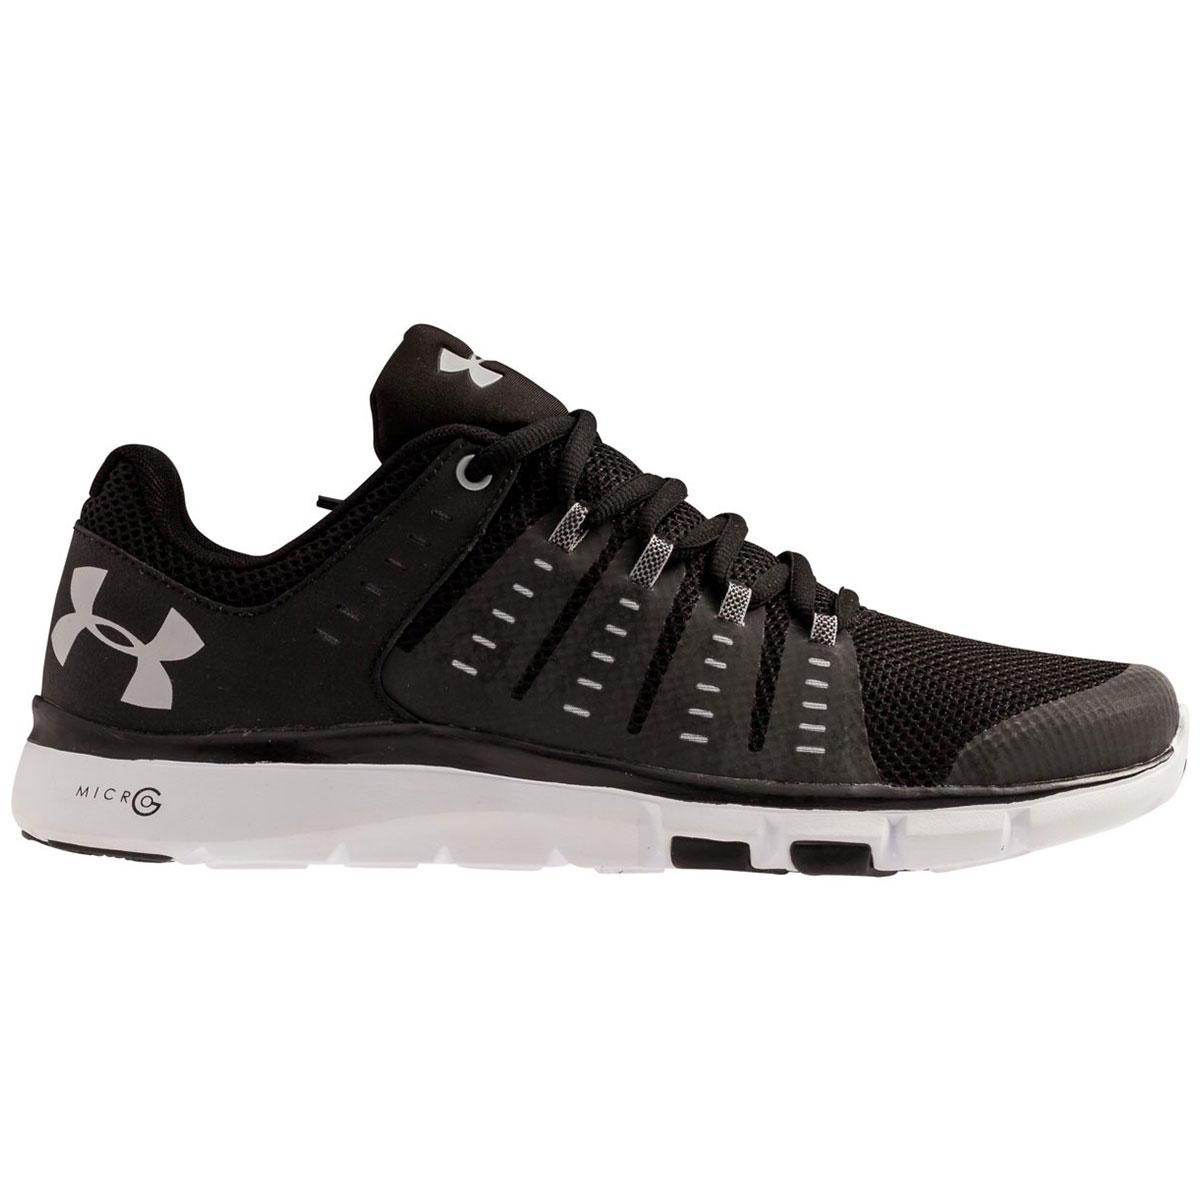 Under Armour 2016 Mens UA Micro G Limitless 2 Trainers ...